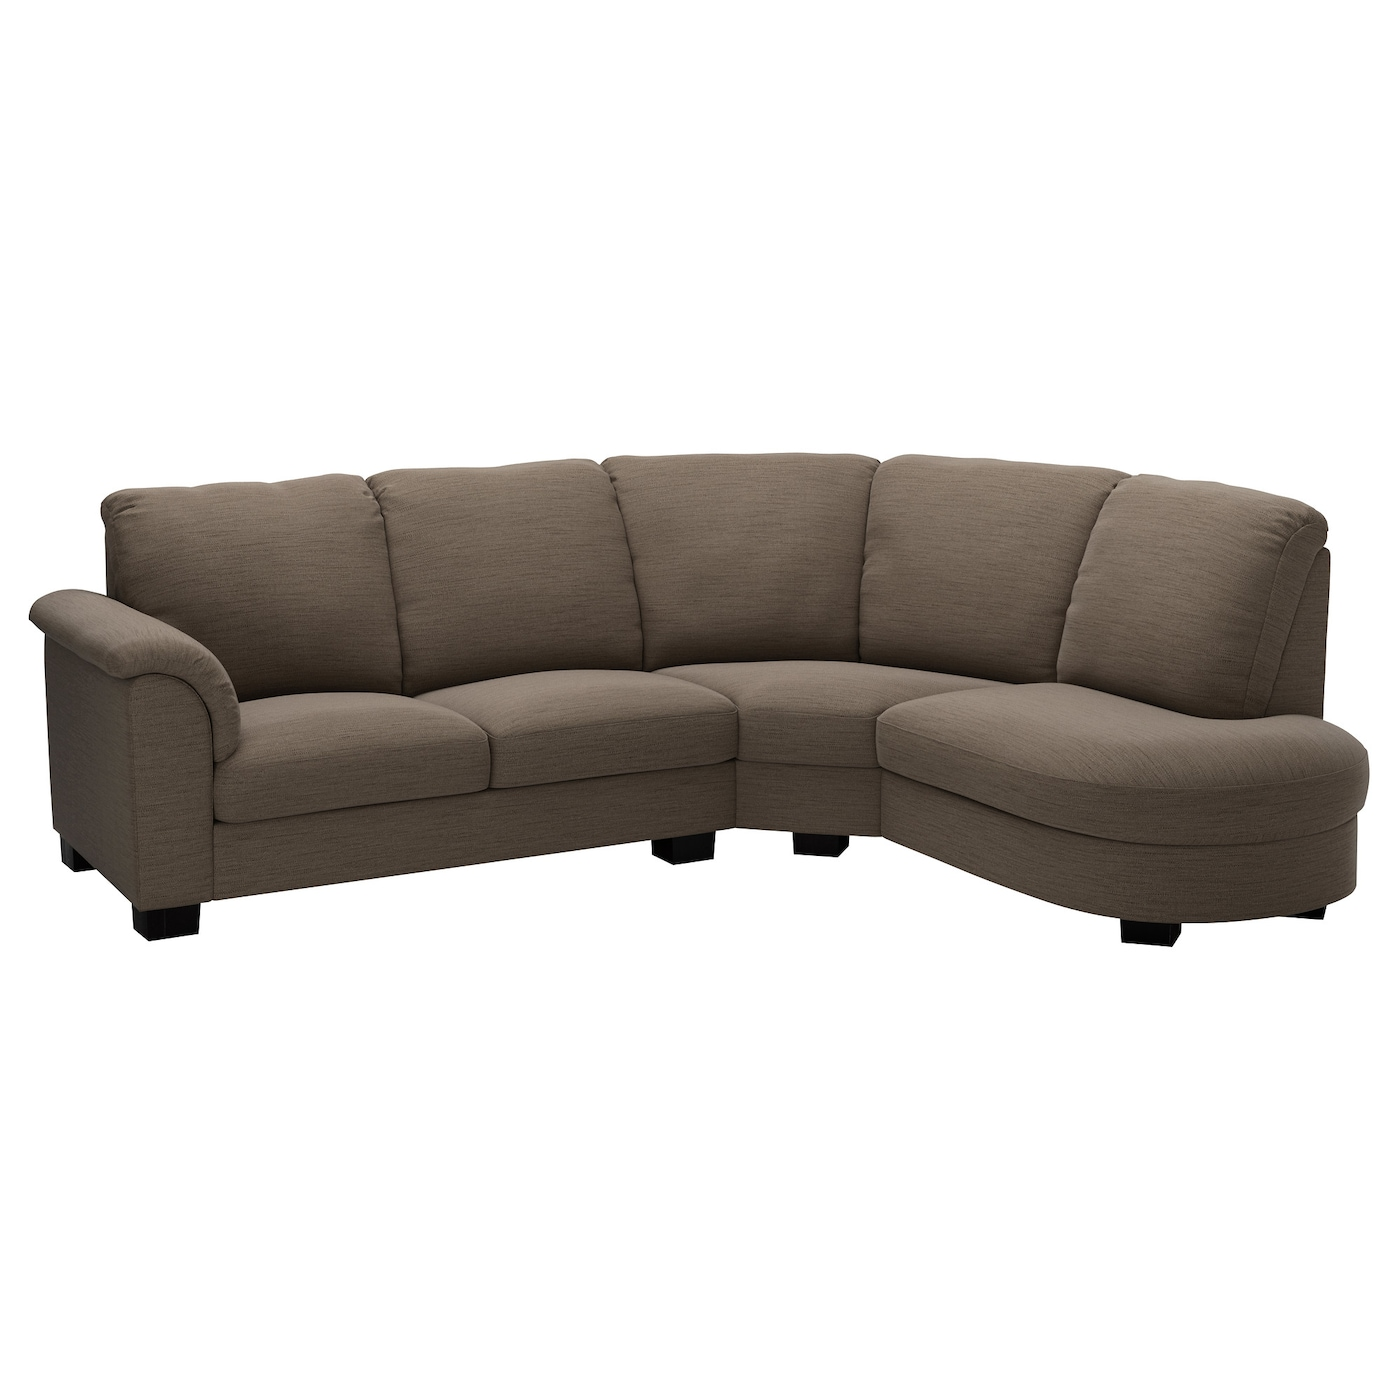 Tidafors corner sofa with arm left hensta light brown ikea for Corner loveseats